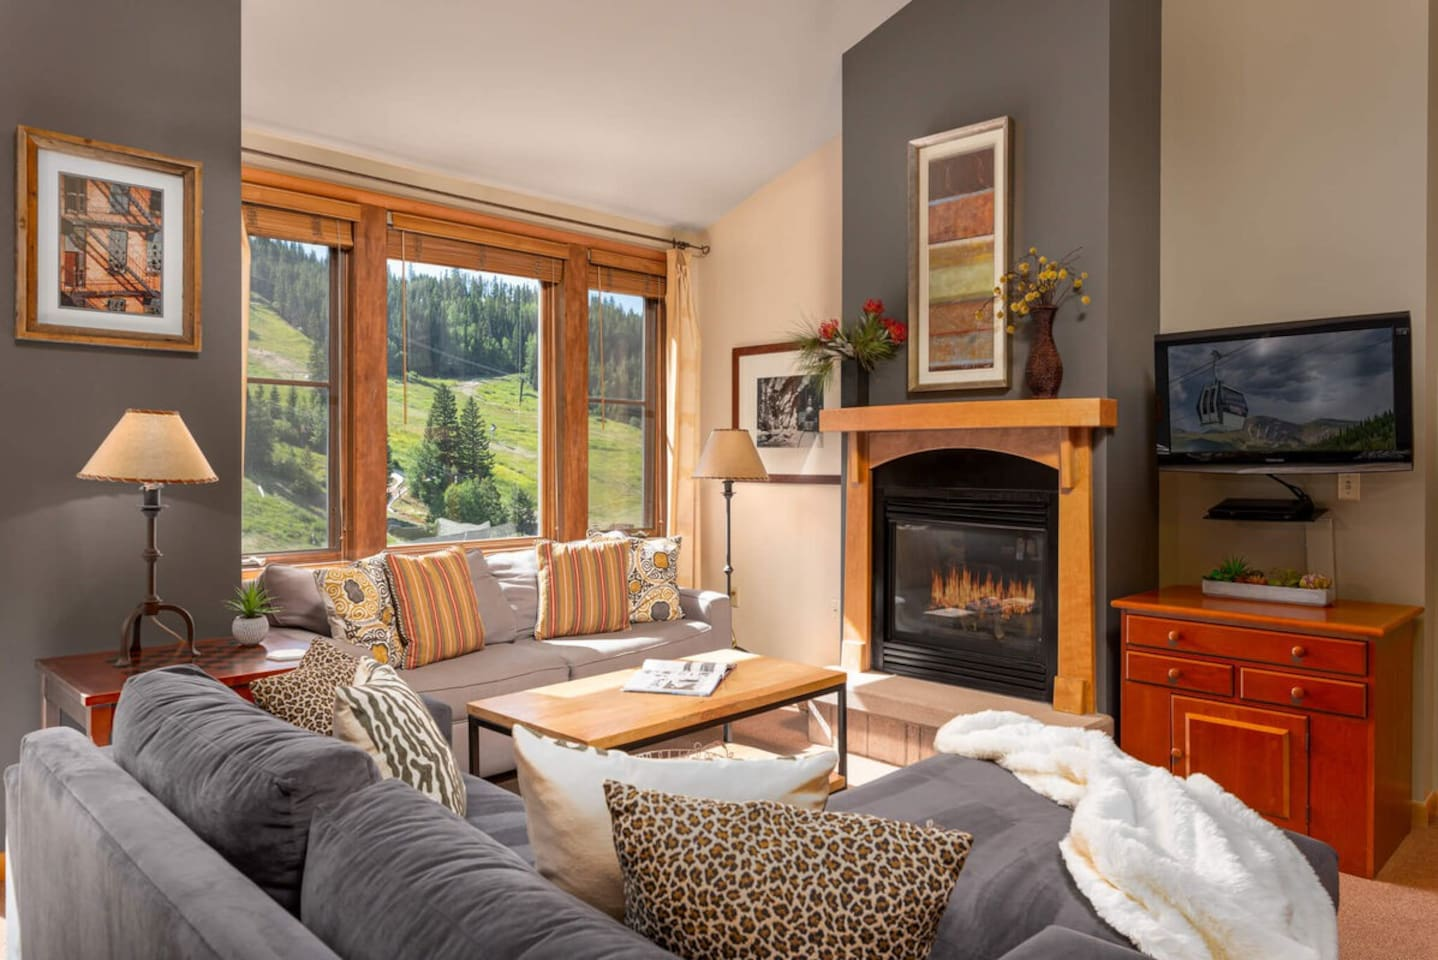 Welcome to Zephyr 2503 - an updated base area condo with thoughtful details and plenty of room